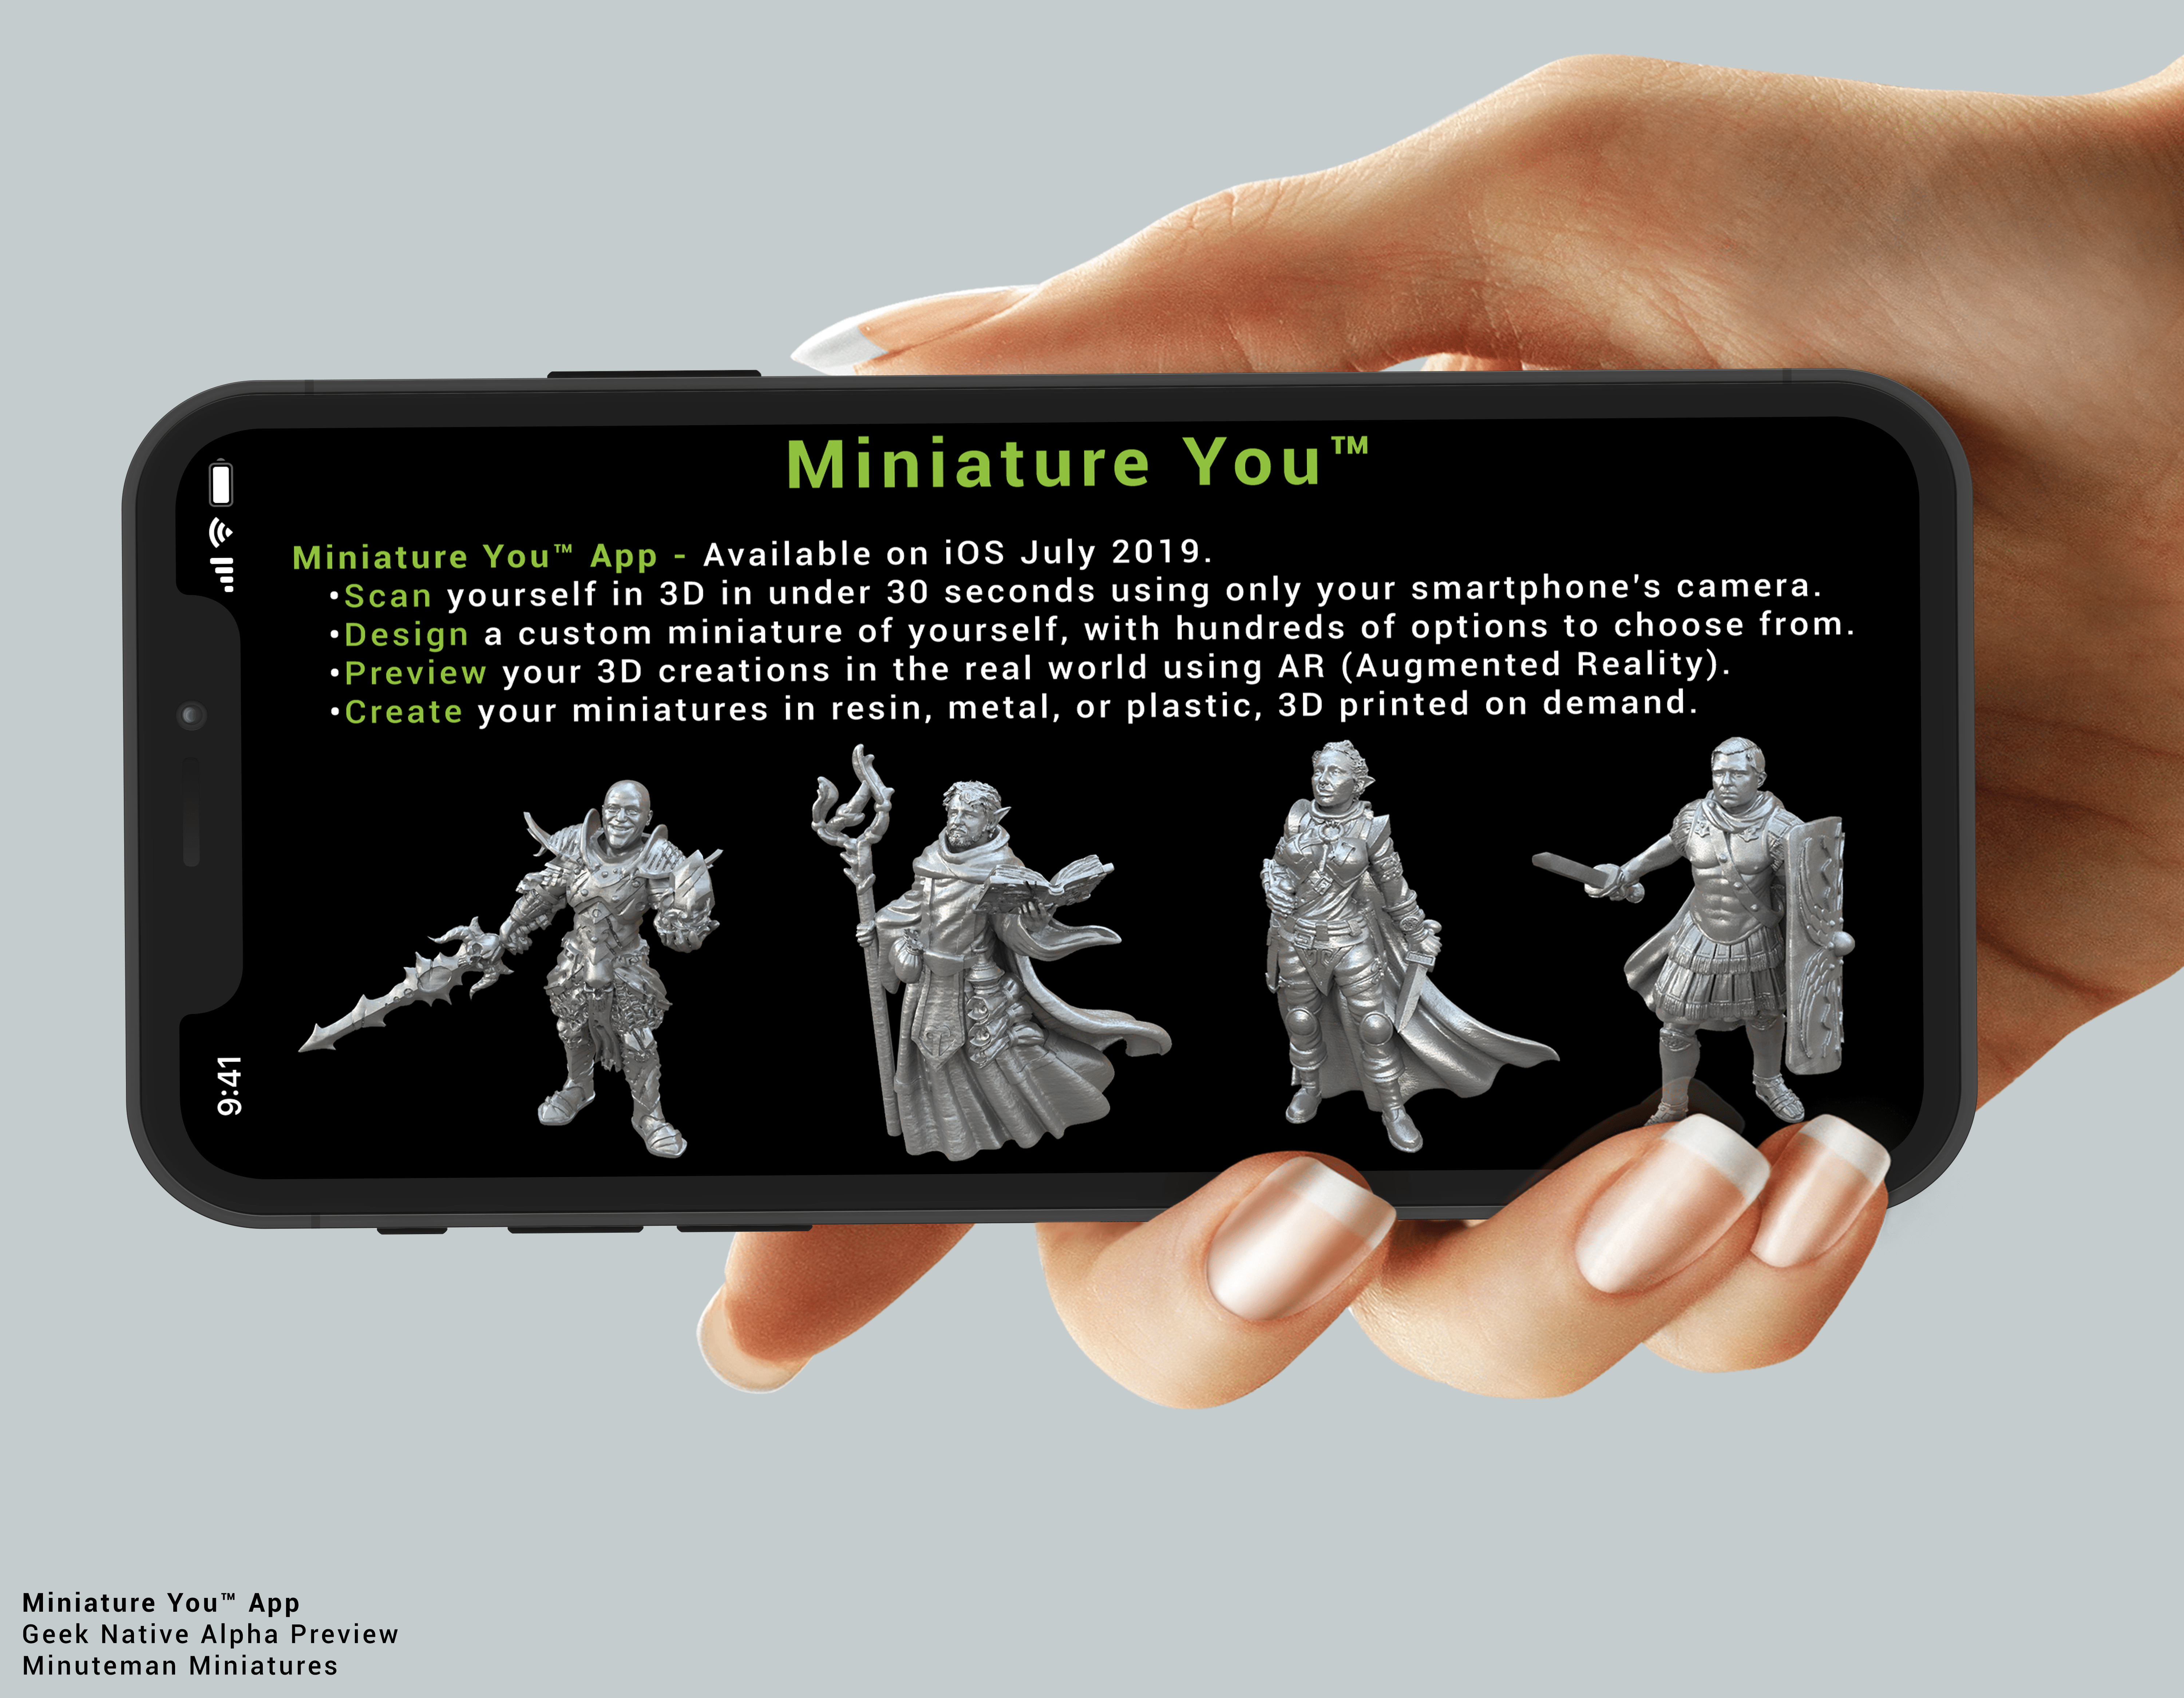 Minuteman Miniatures' Miniature You™